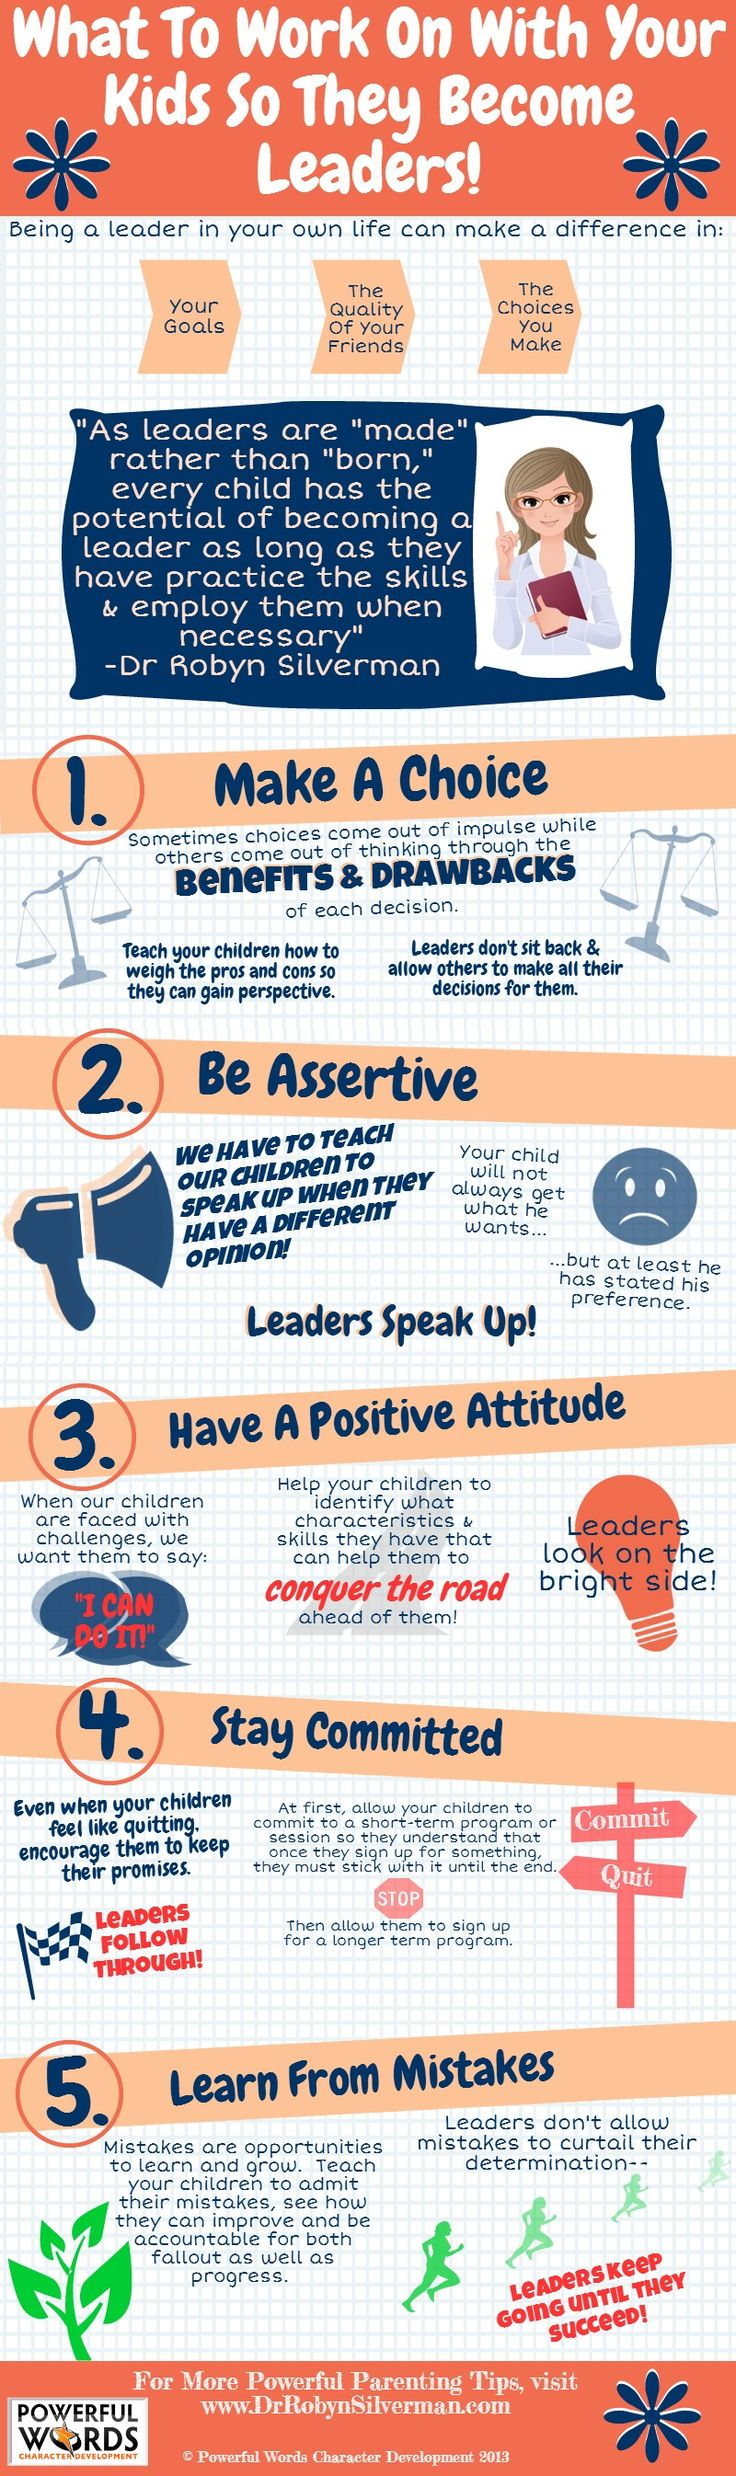 What to work on with your kids so they become leaders! #Parenting #leadership http://www.drrobynsilverman.com/